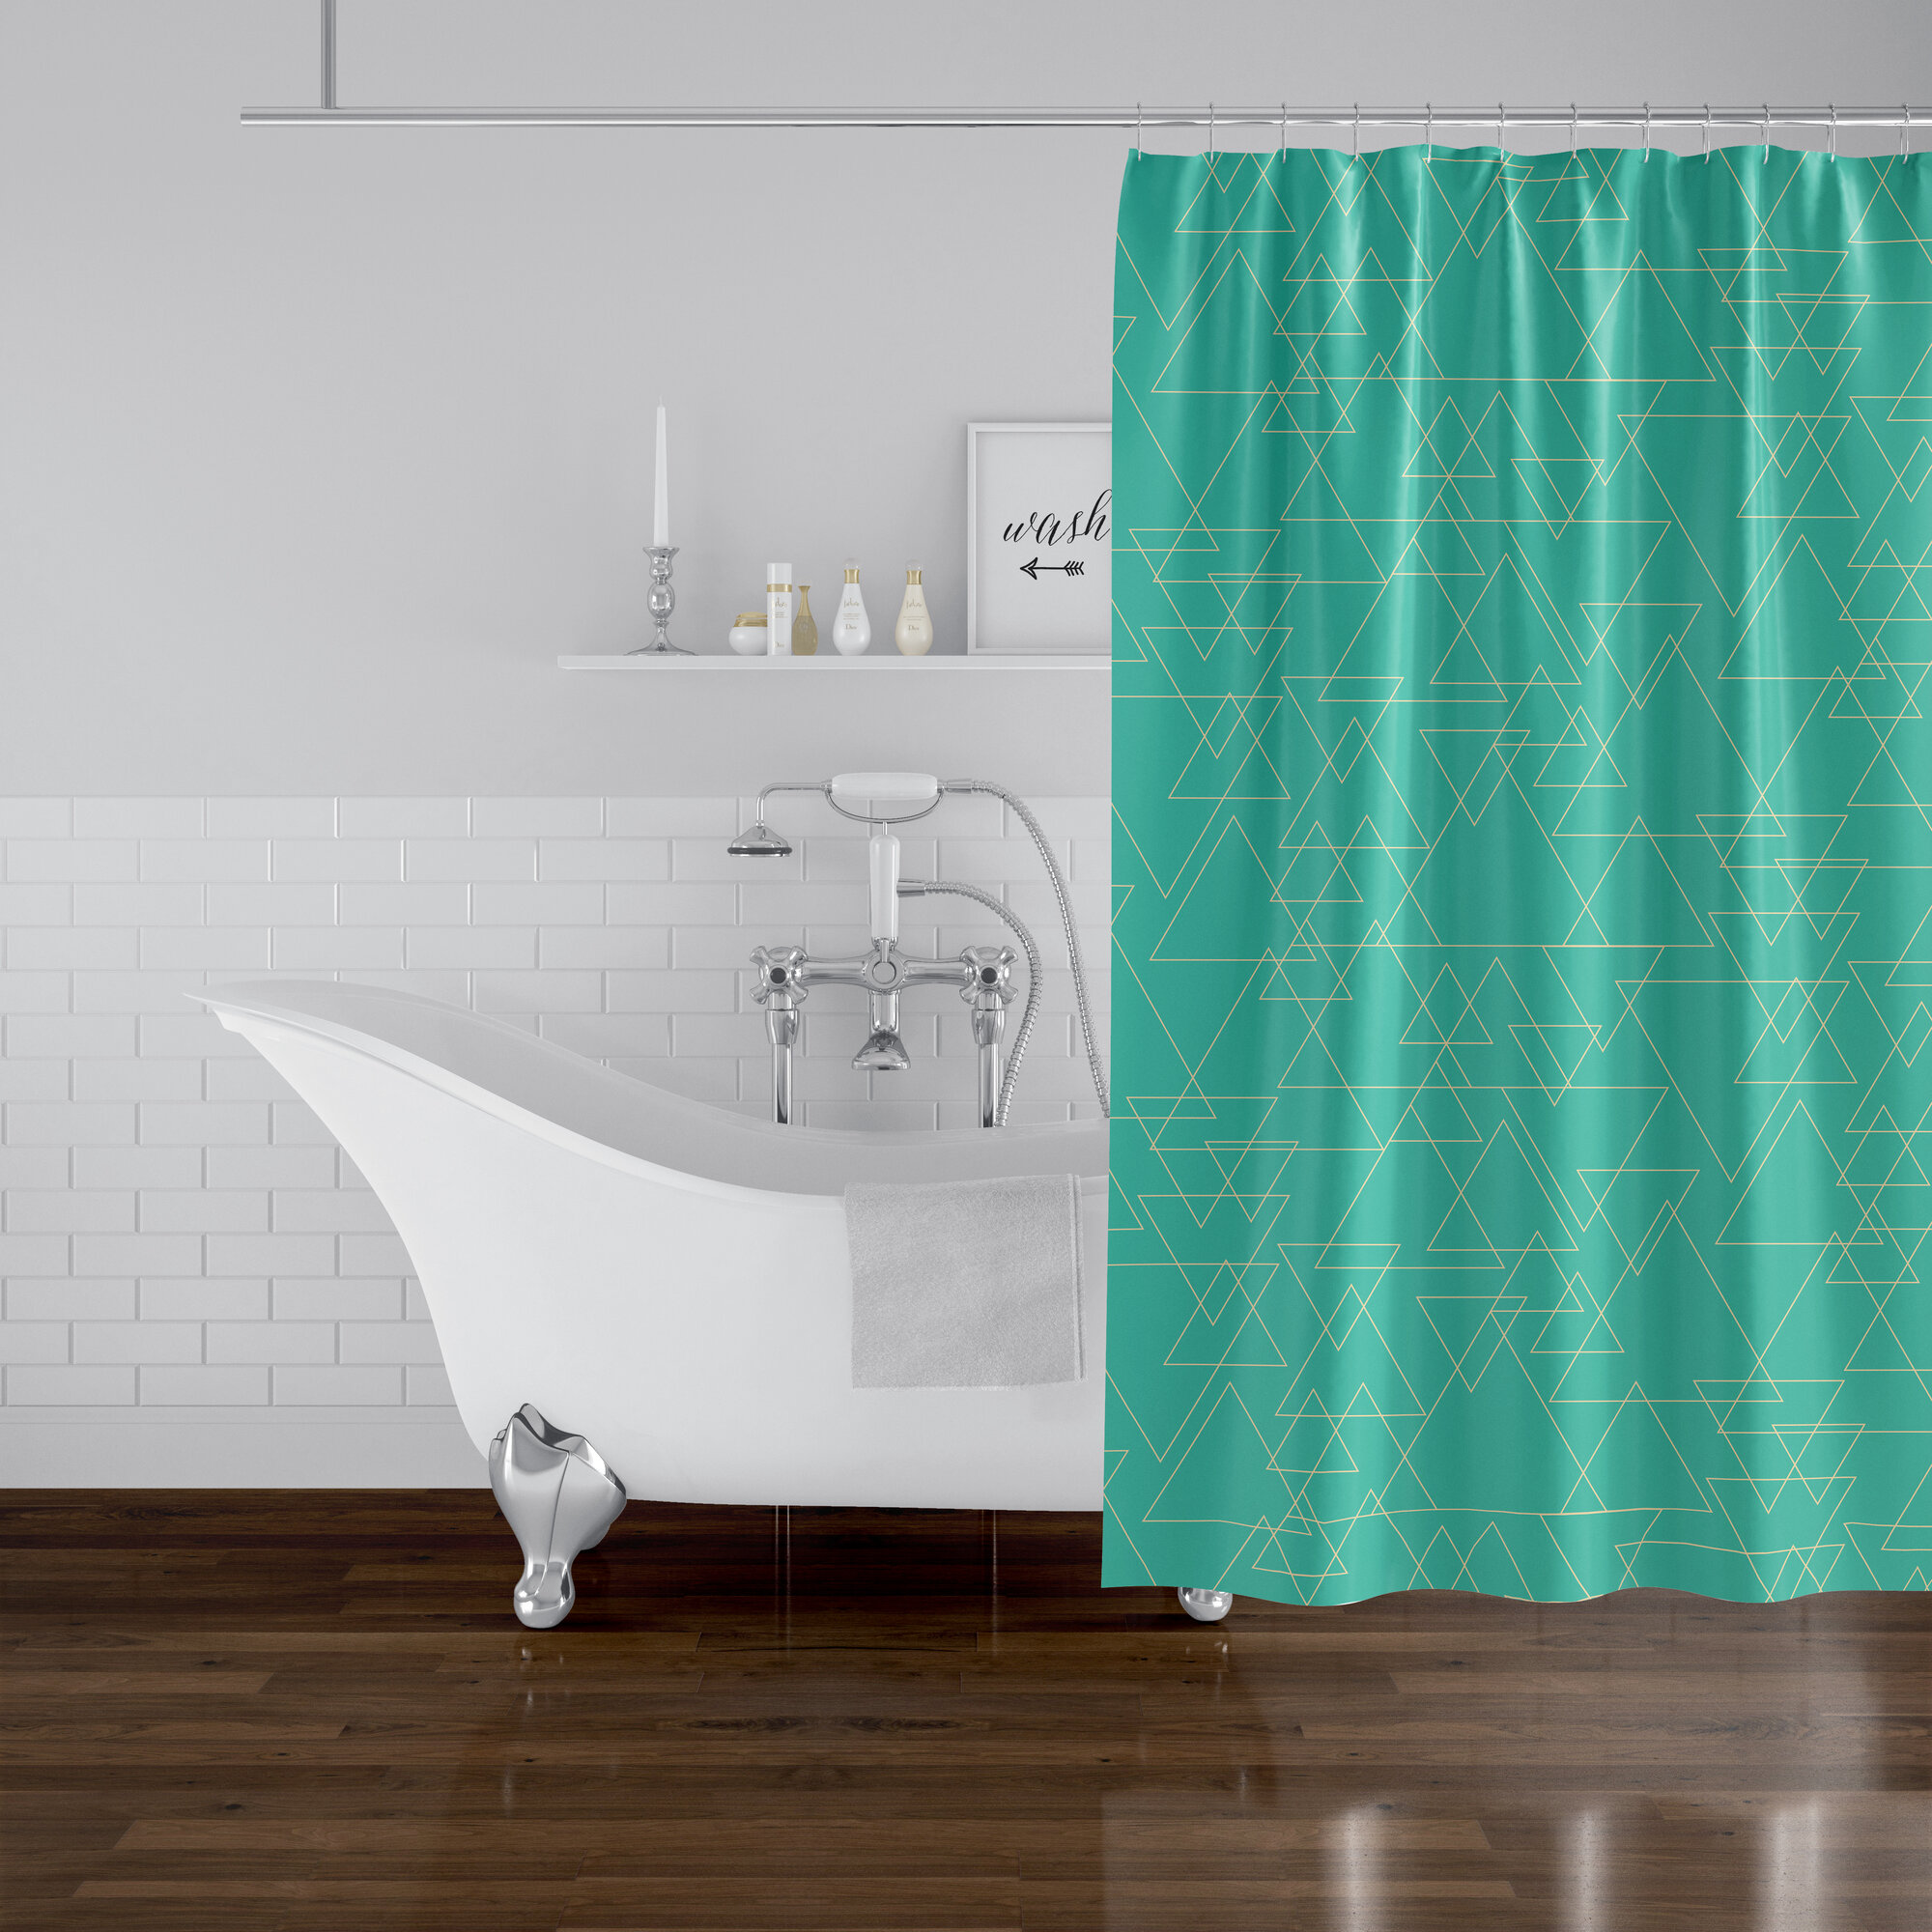 Ivy Bronx Ismay Intersecting Triangles Shower Curtain